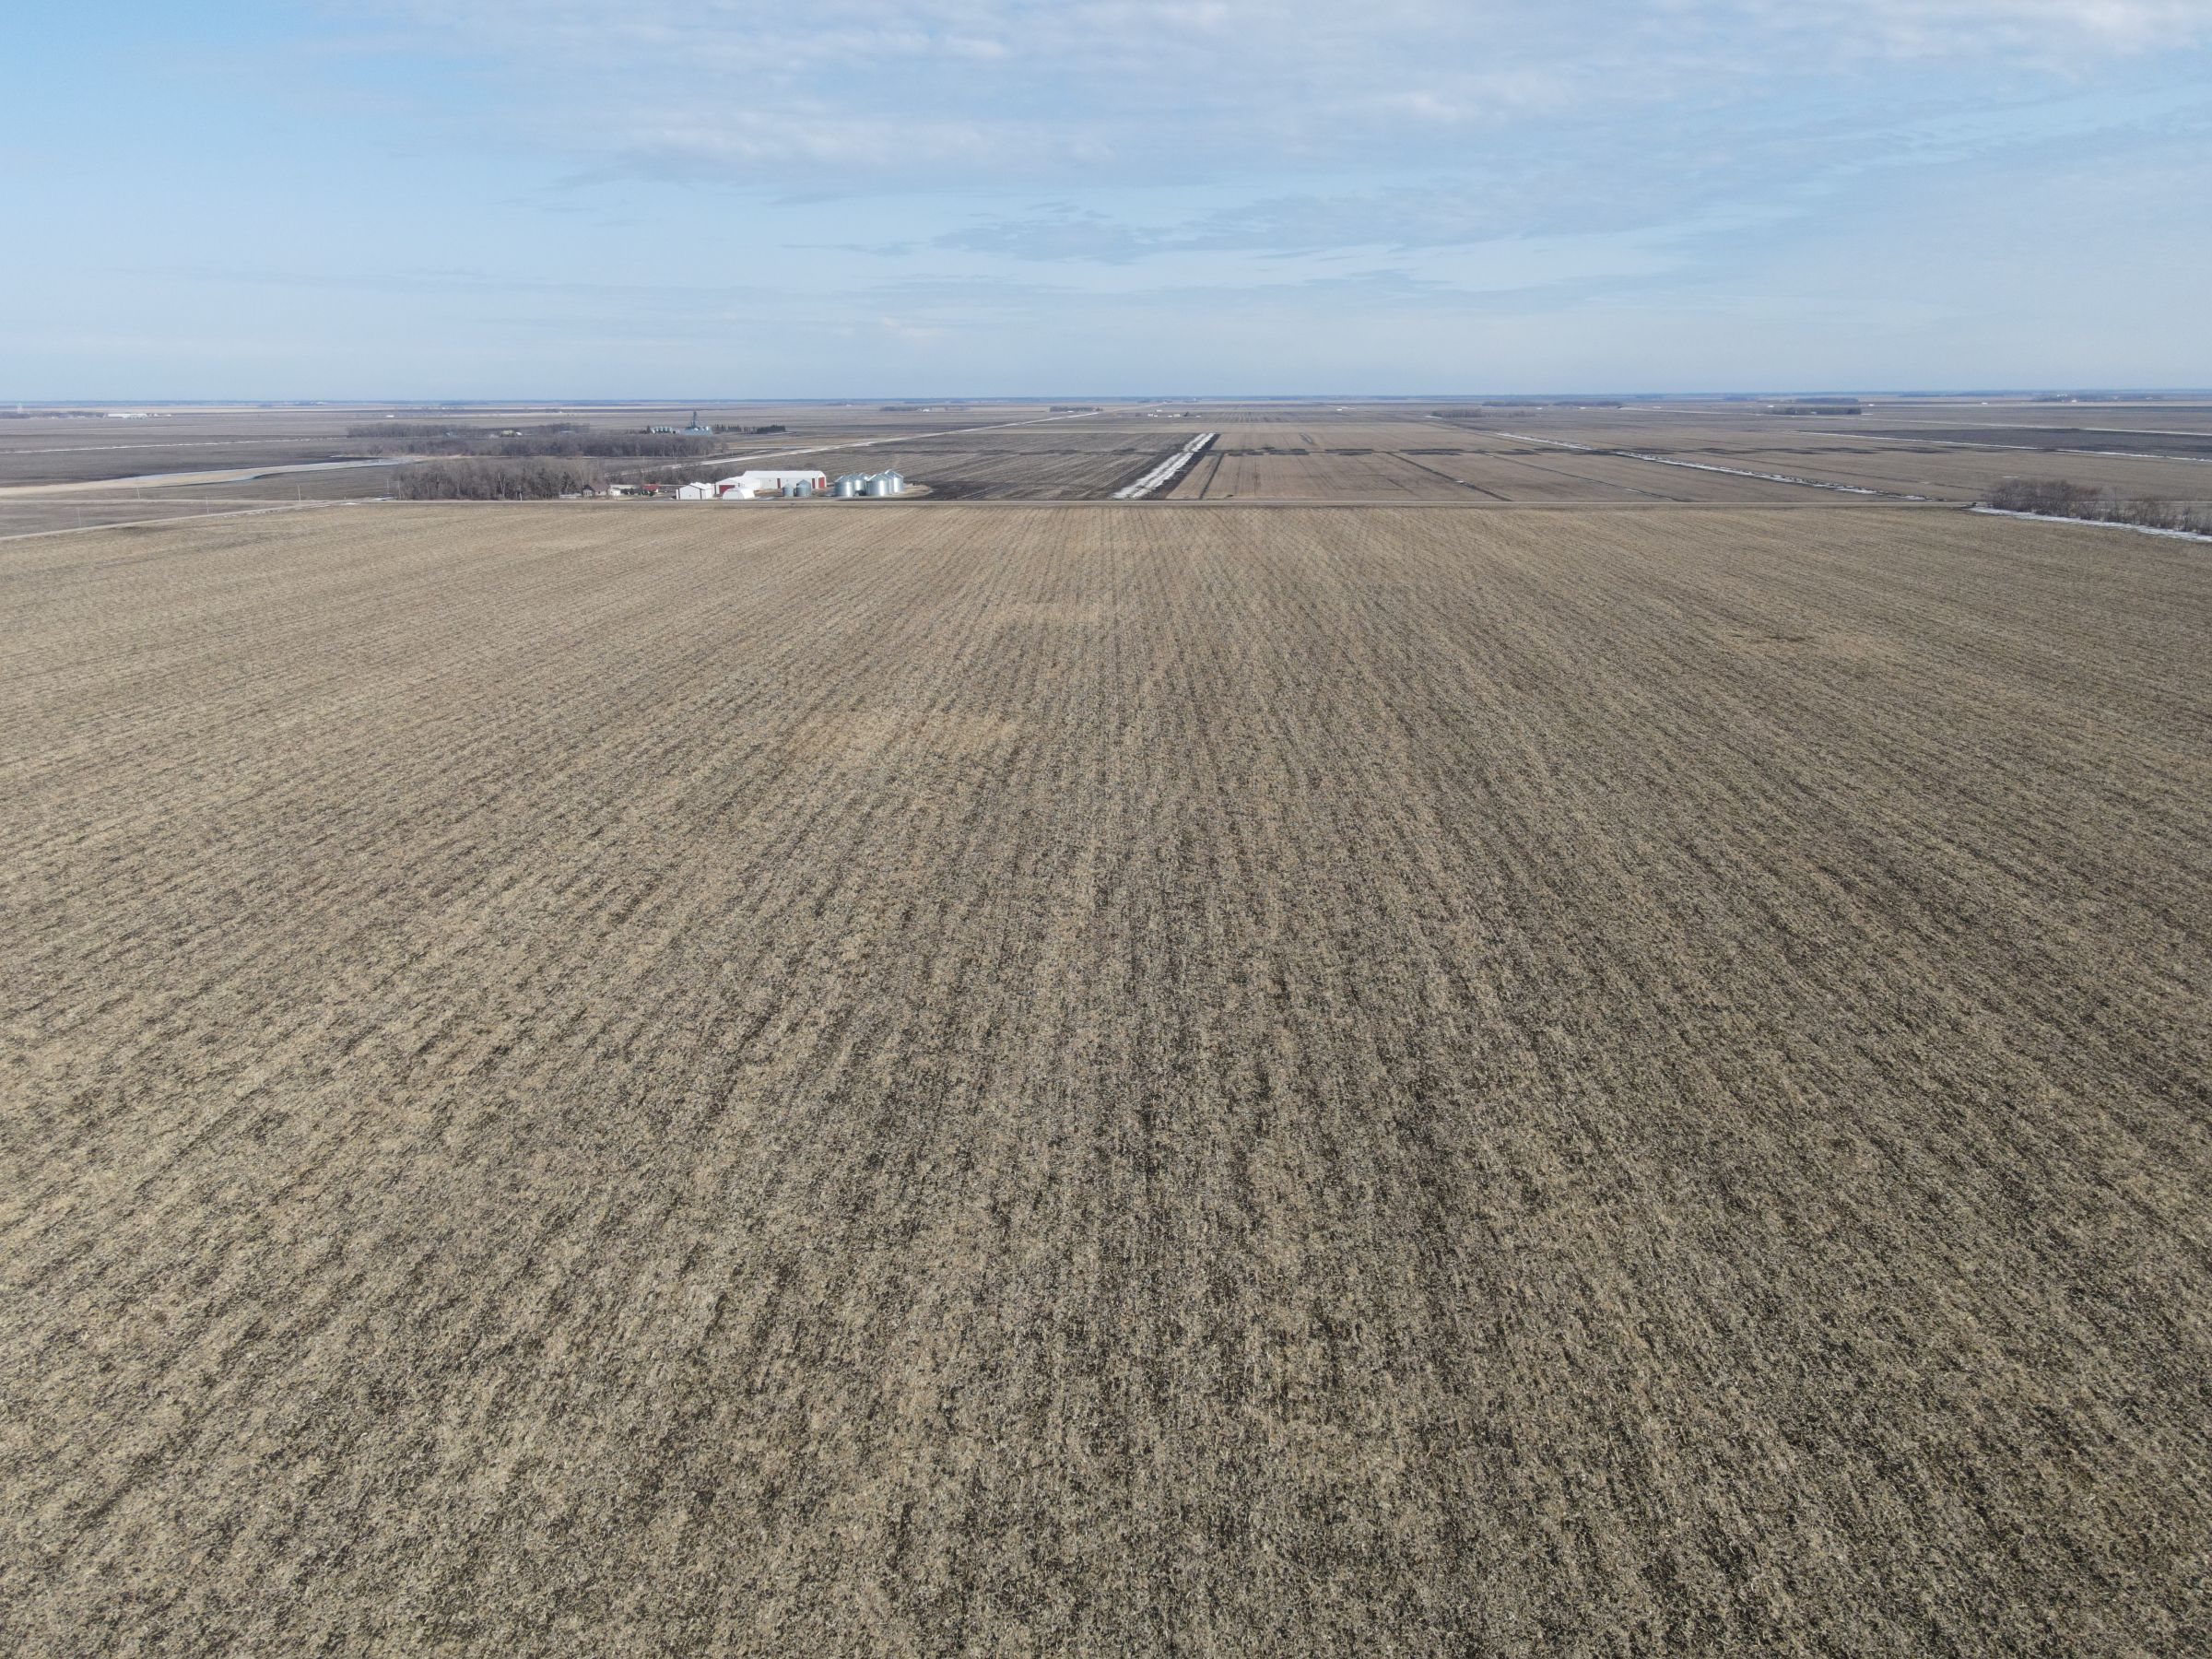 auctions-cass-county-north-dakota-157-acres-listing-number-15592-1-2021-06-16-181213.JPG